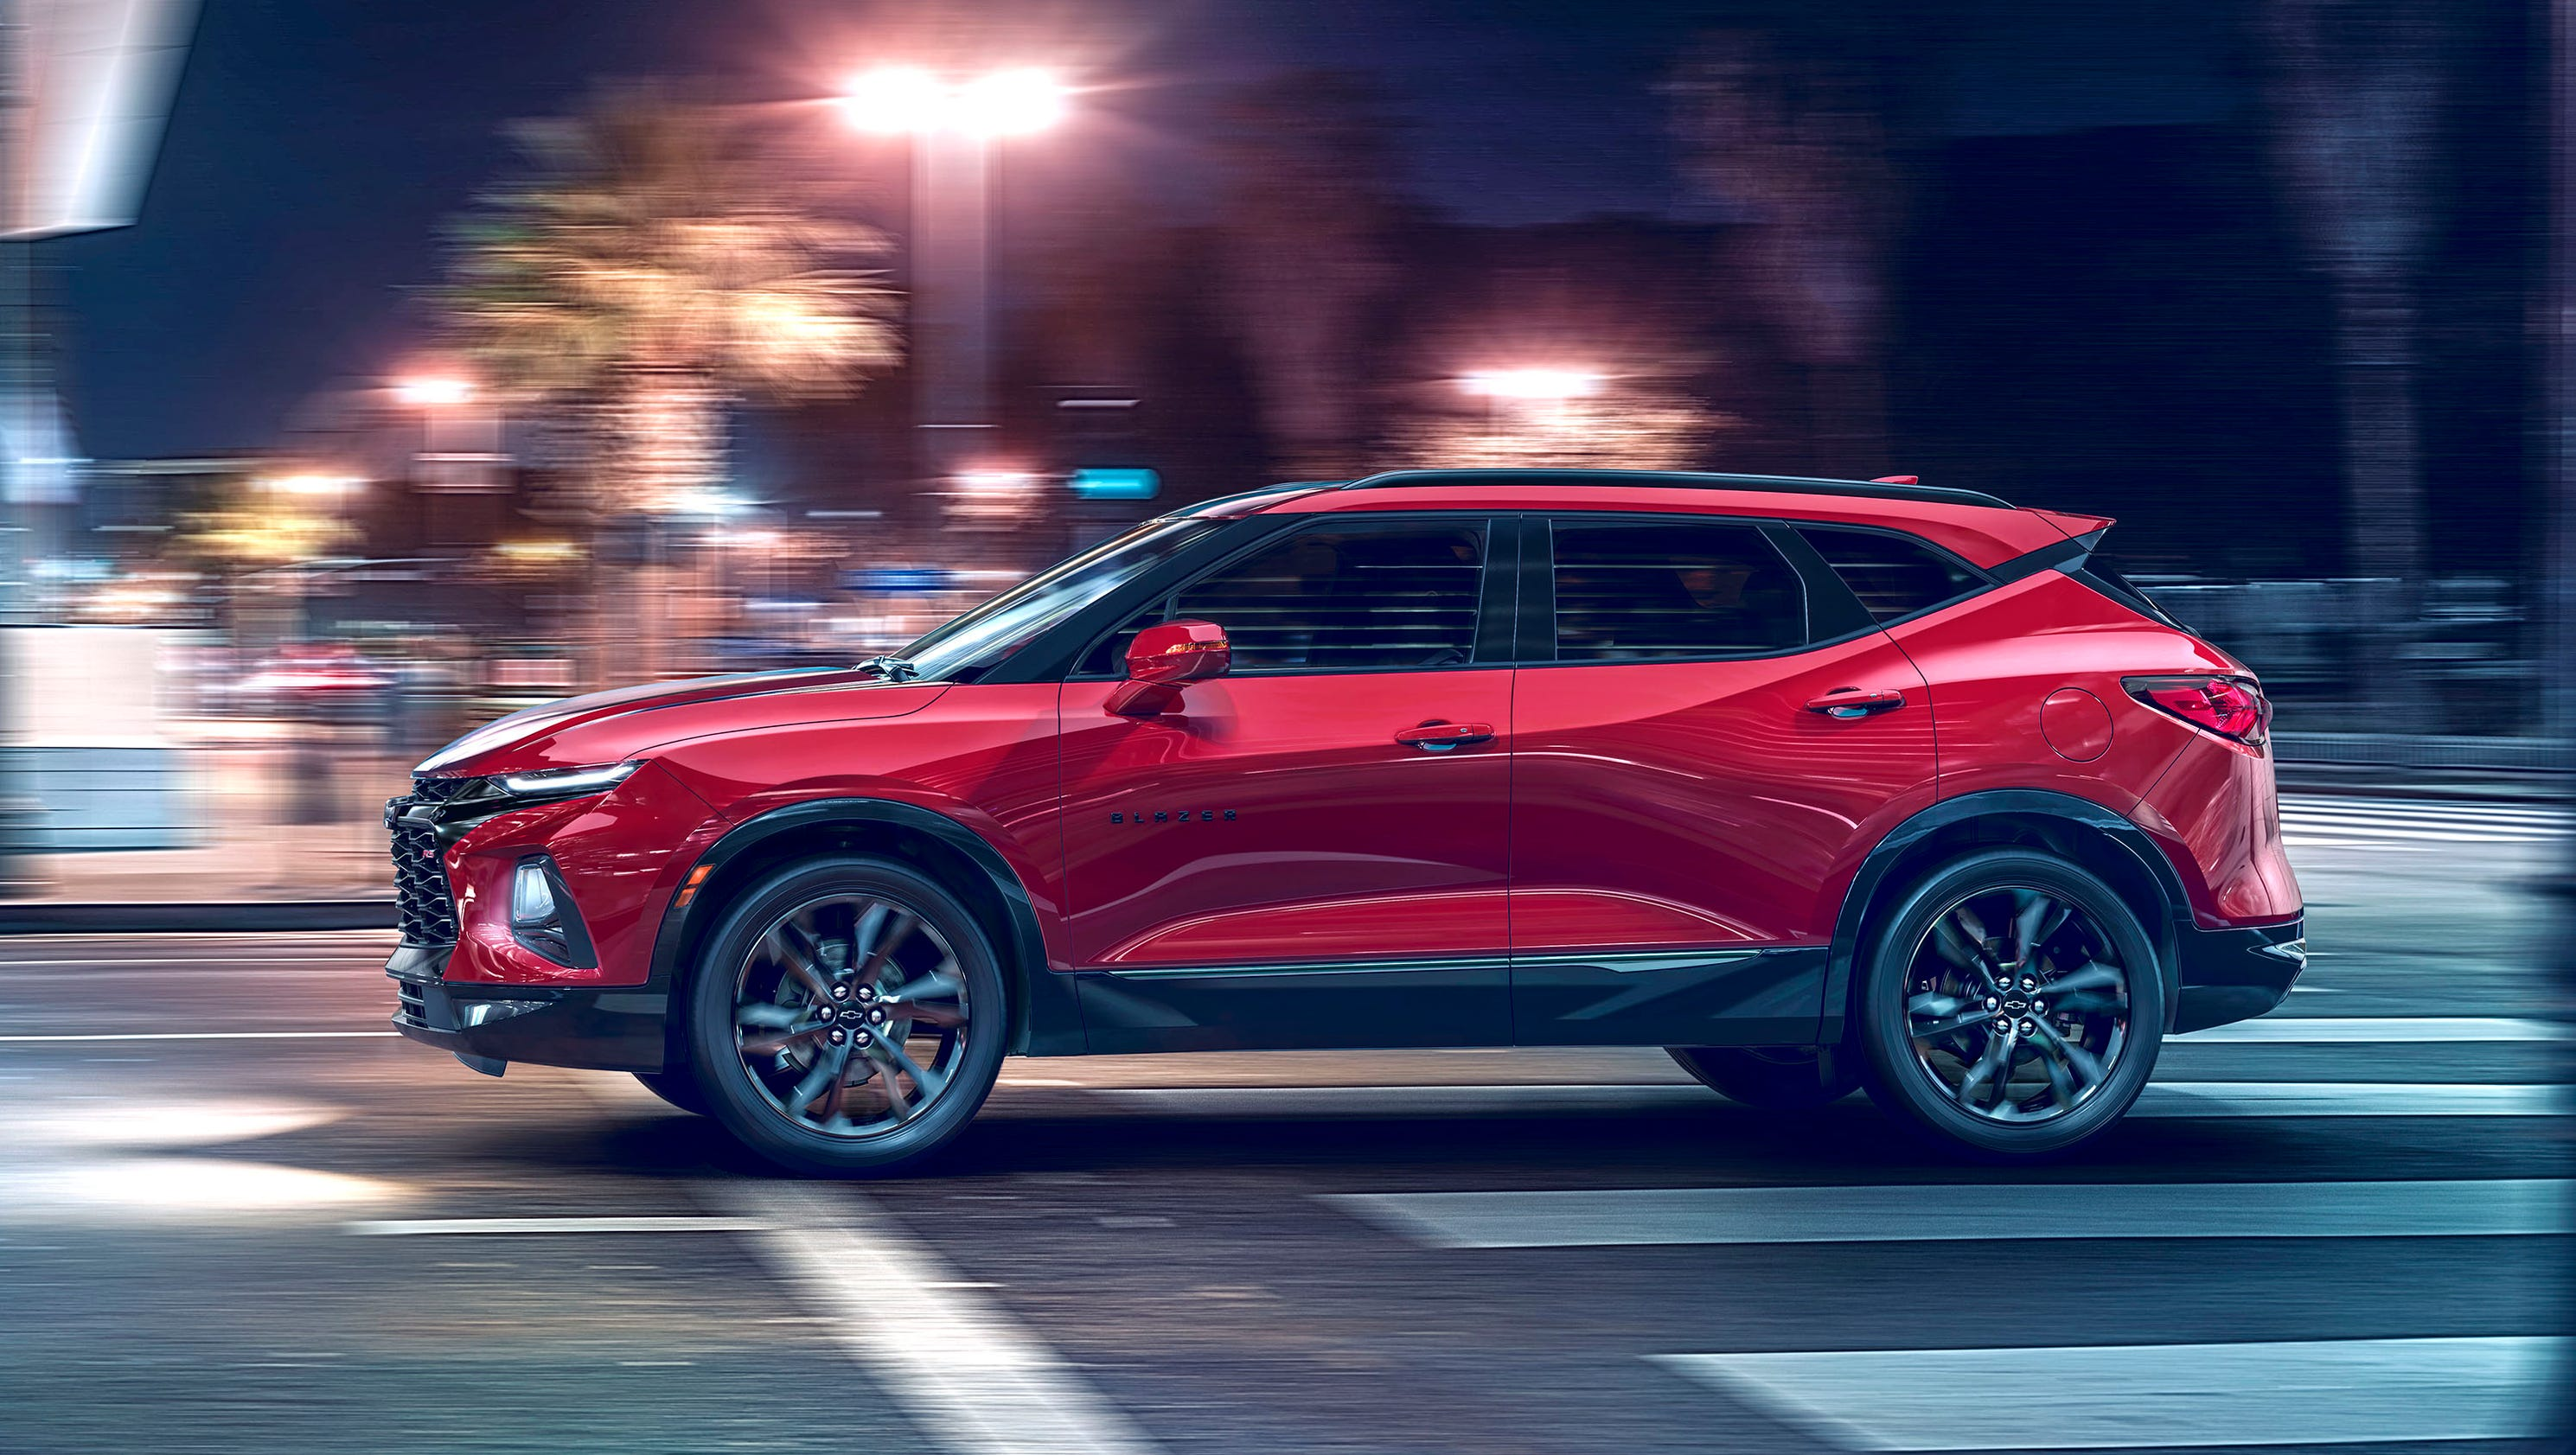 Chevy Blazer Suv >> What shoppers will like about the all-new 2019 Chevy Blazer